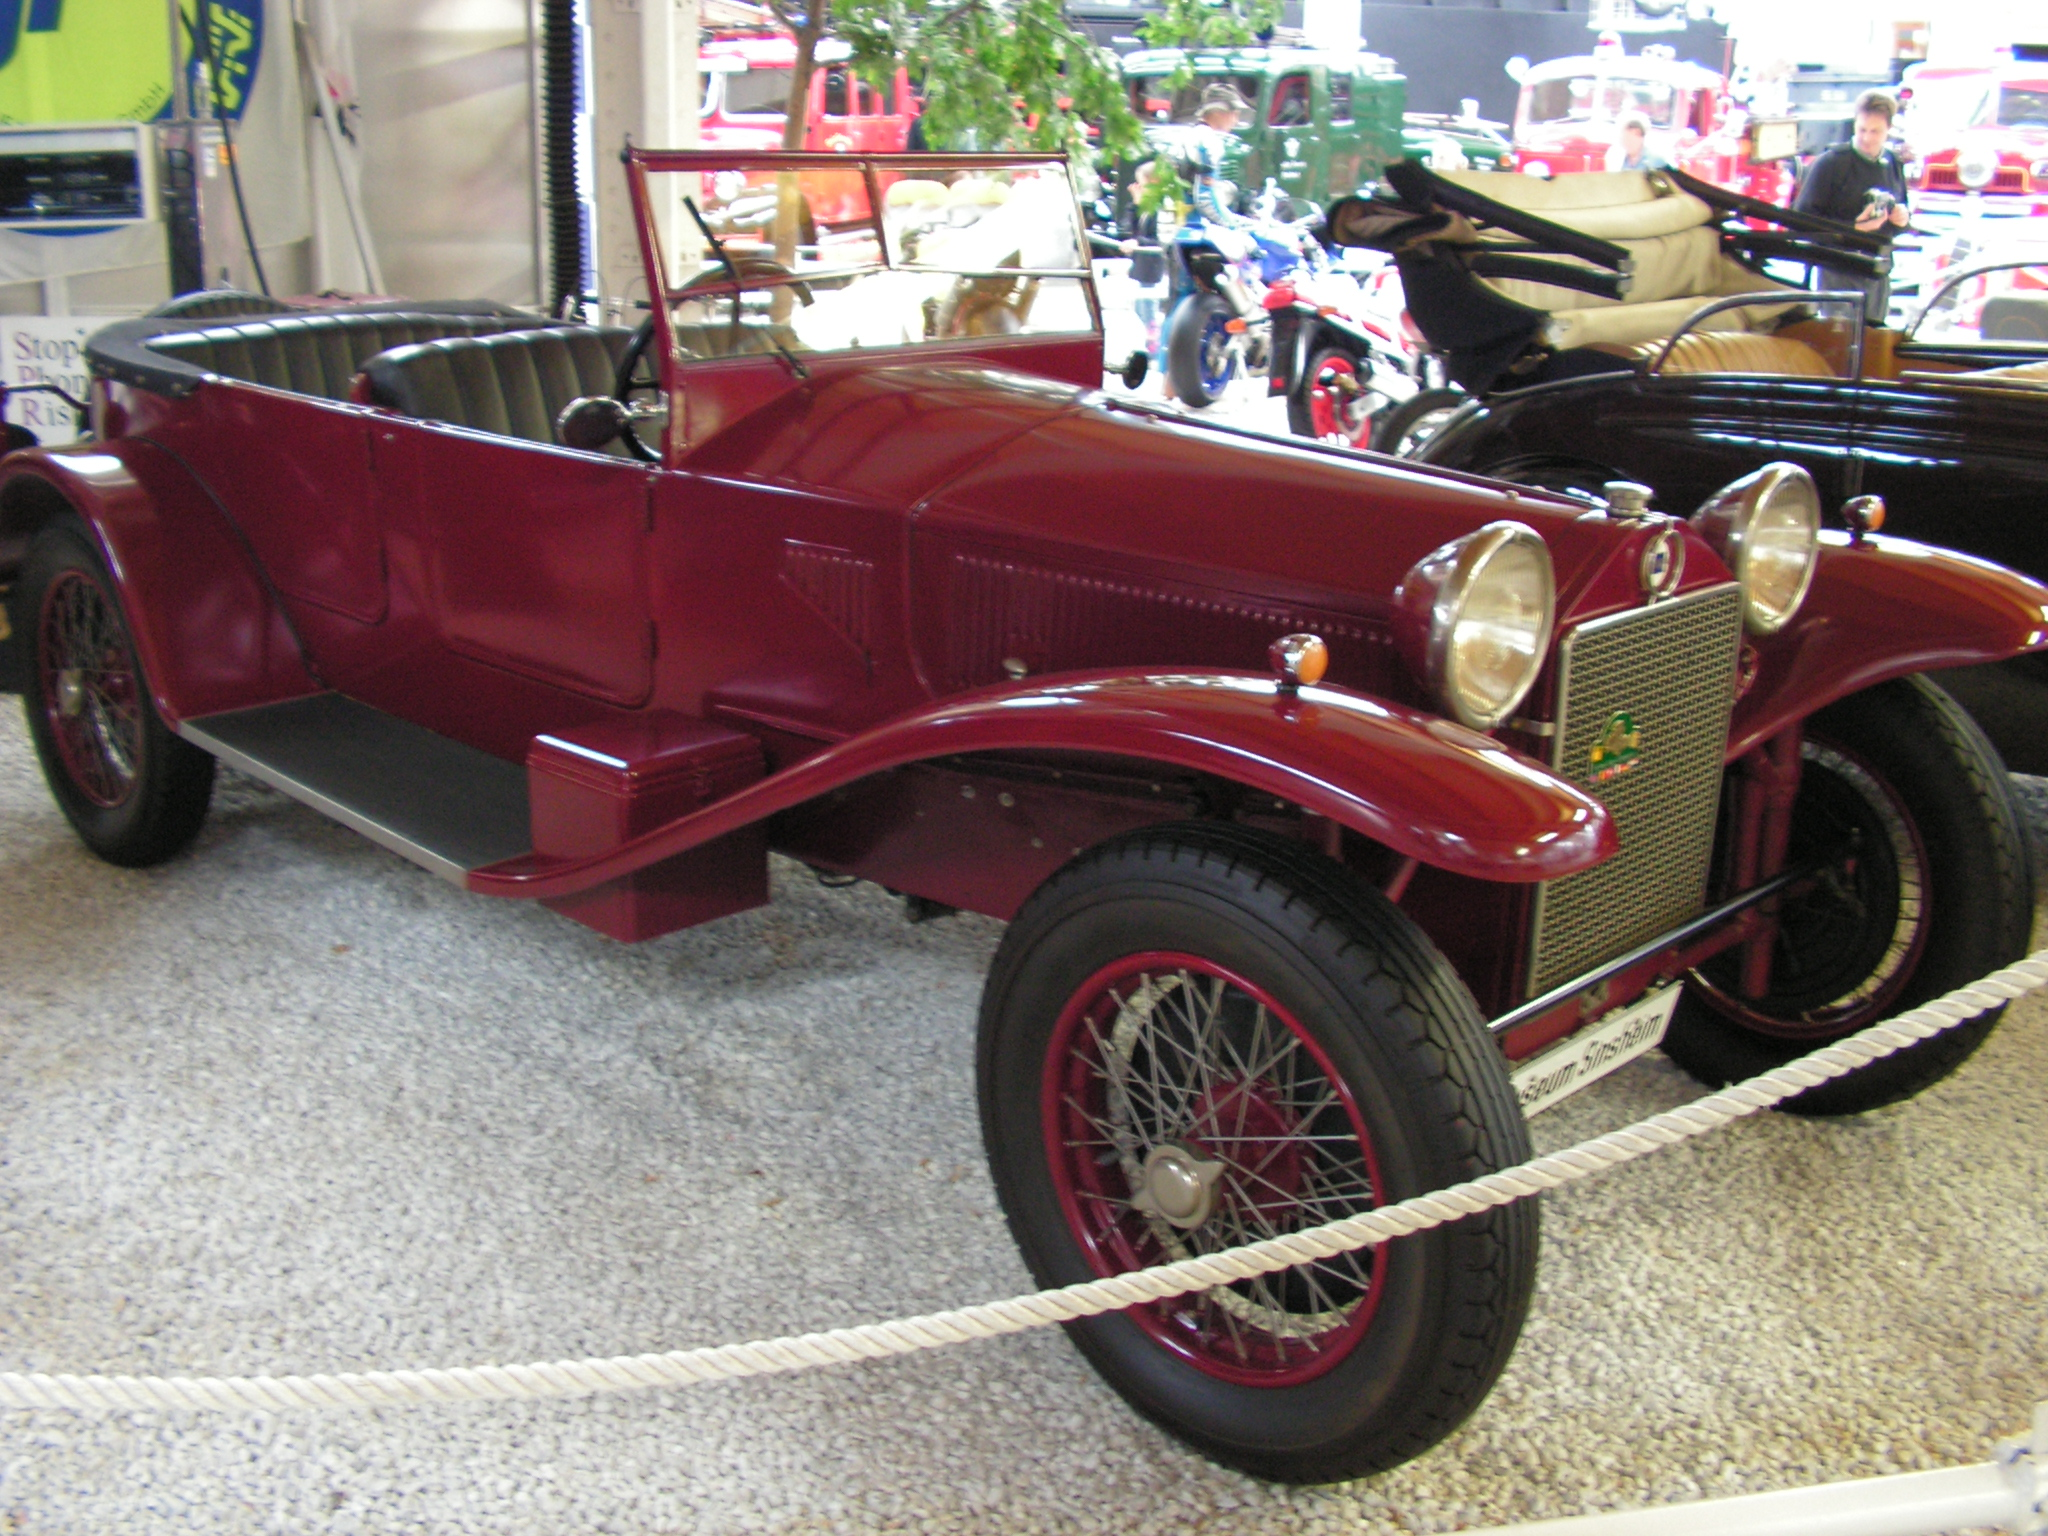 https://upload.wikimedia.org/wikipedia/commons/a/aa/Lancia-Lambda.jpg